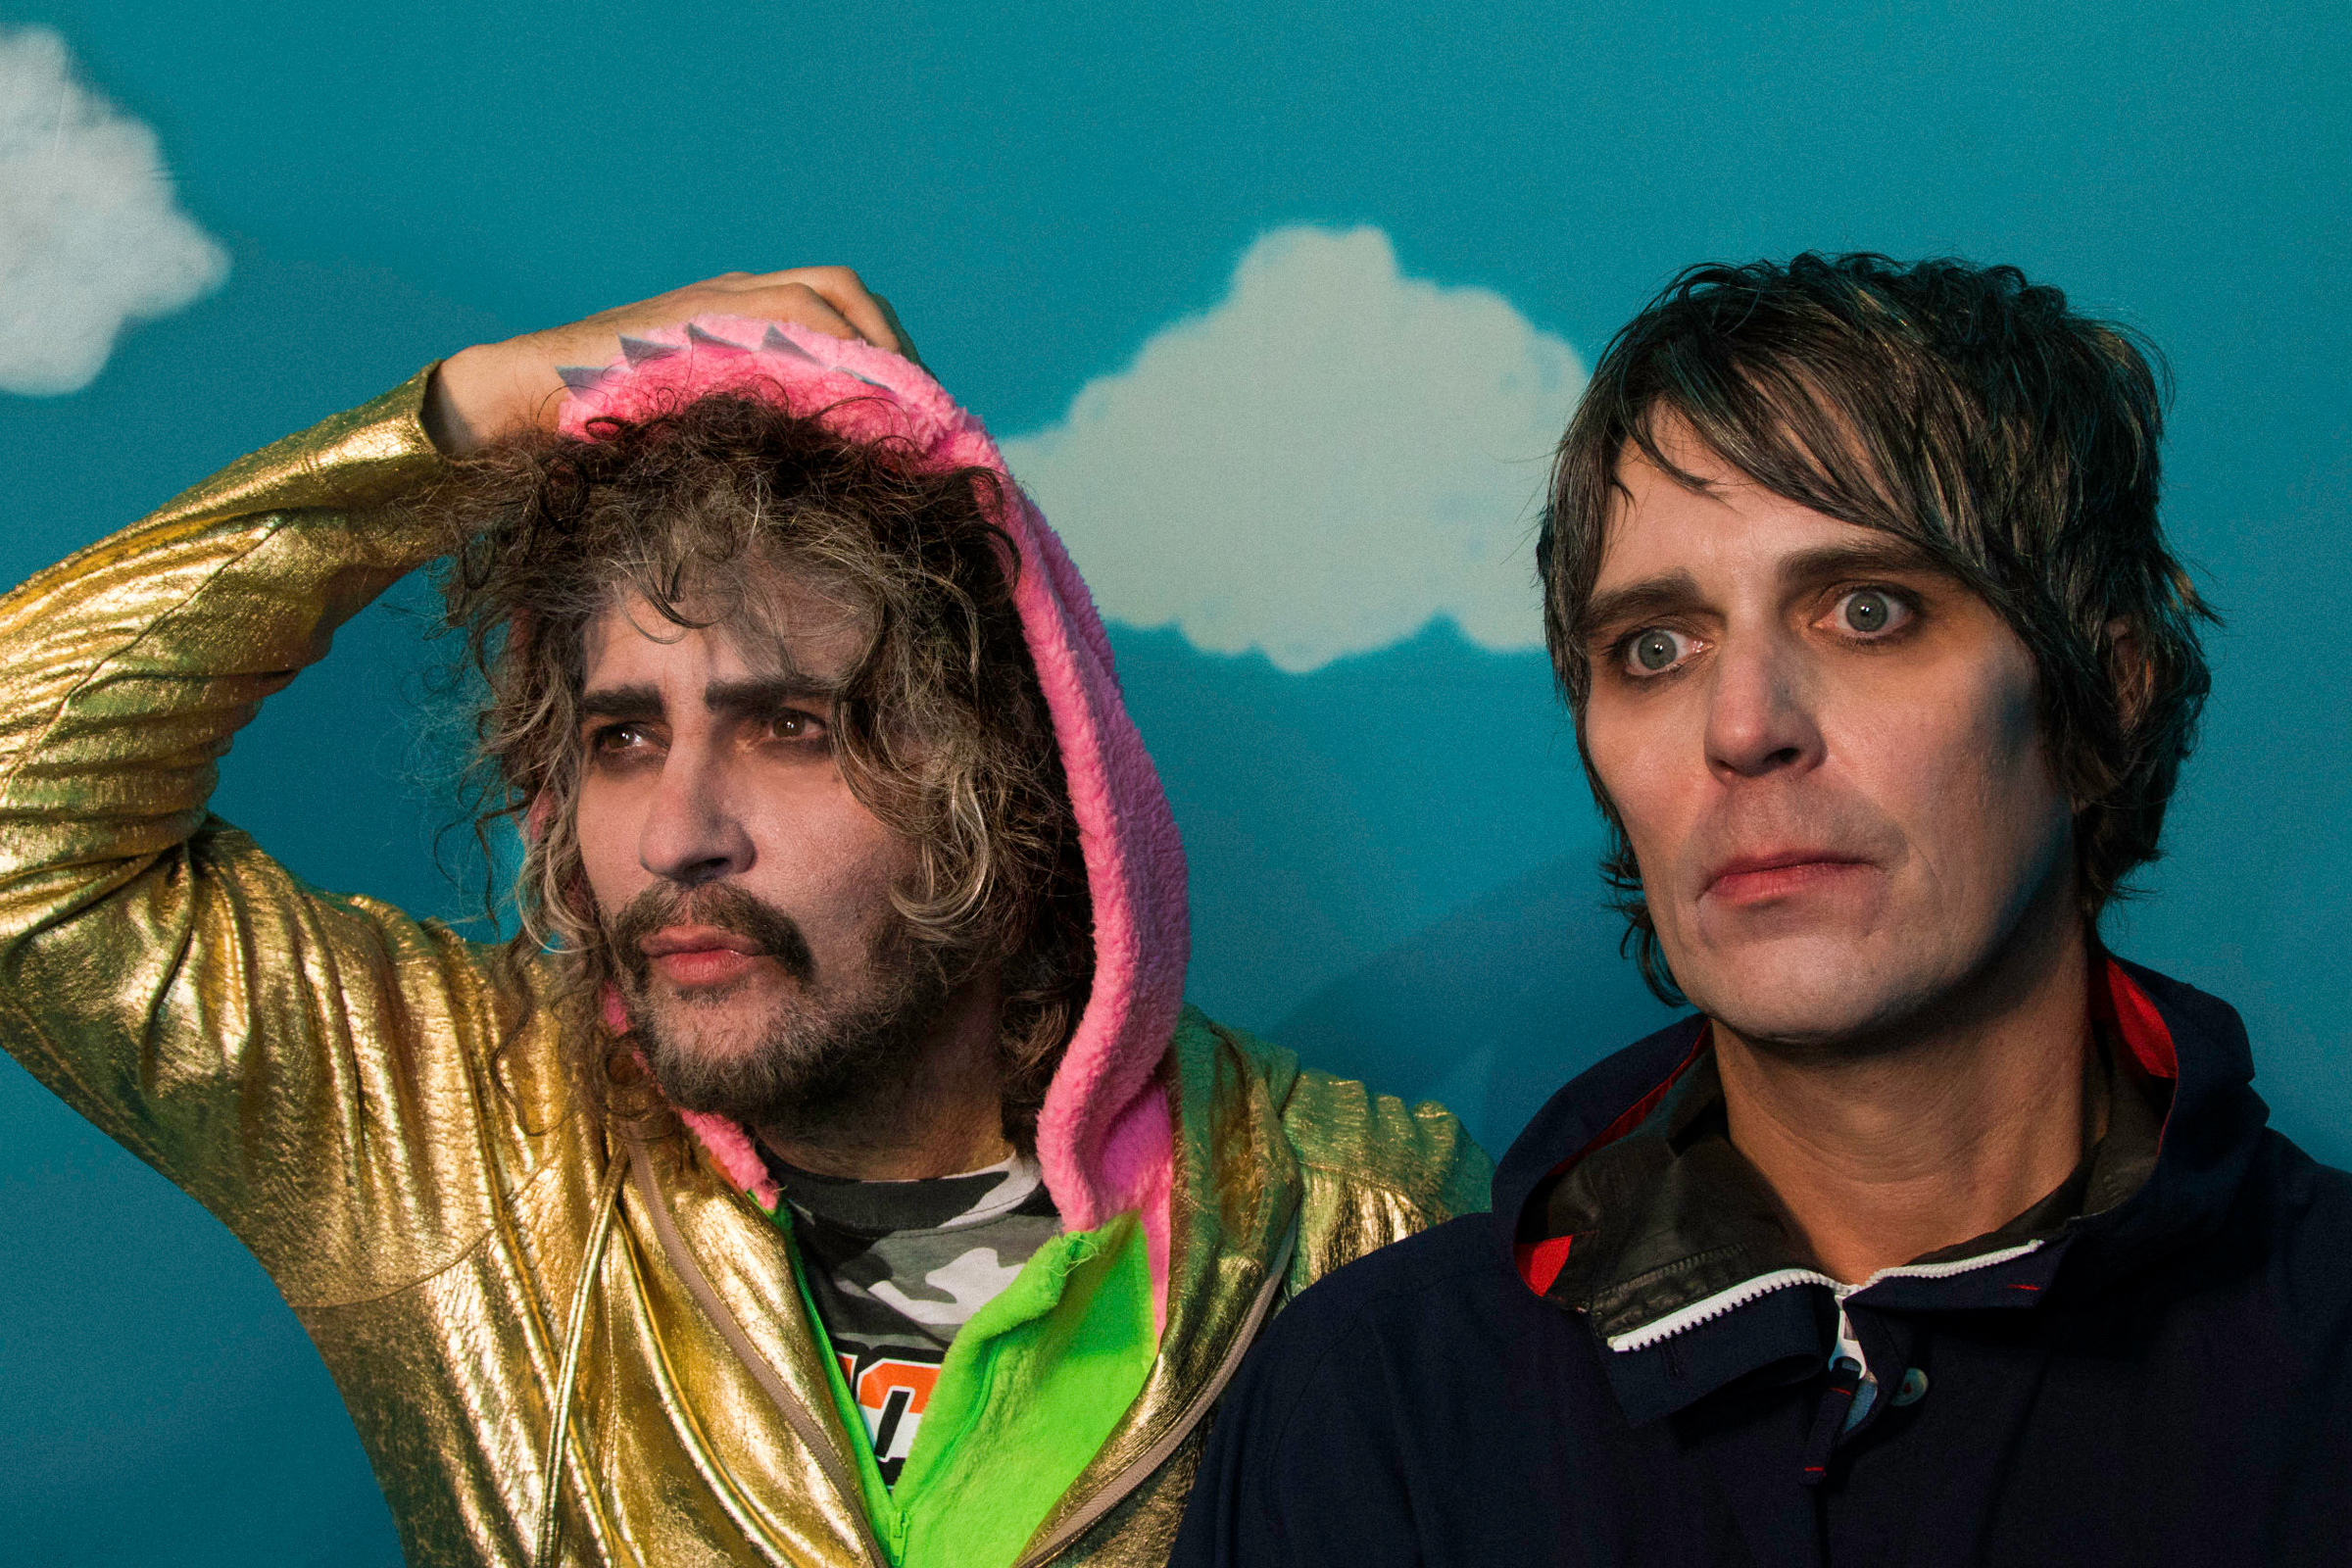 Flaming Lips Tap Mick Jones for New Album 'King's Mouth' – Rolling Stone